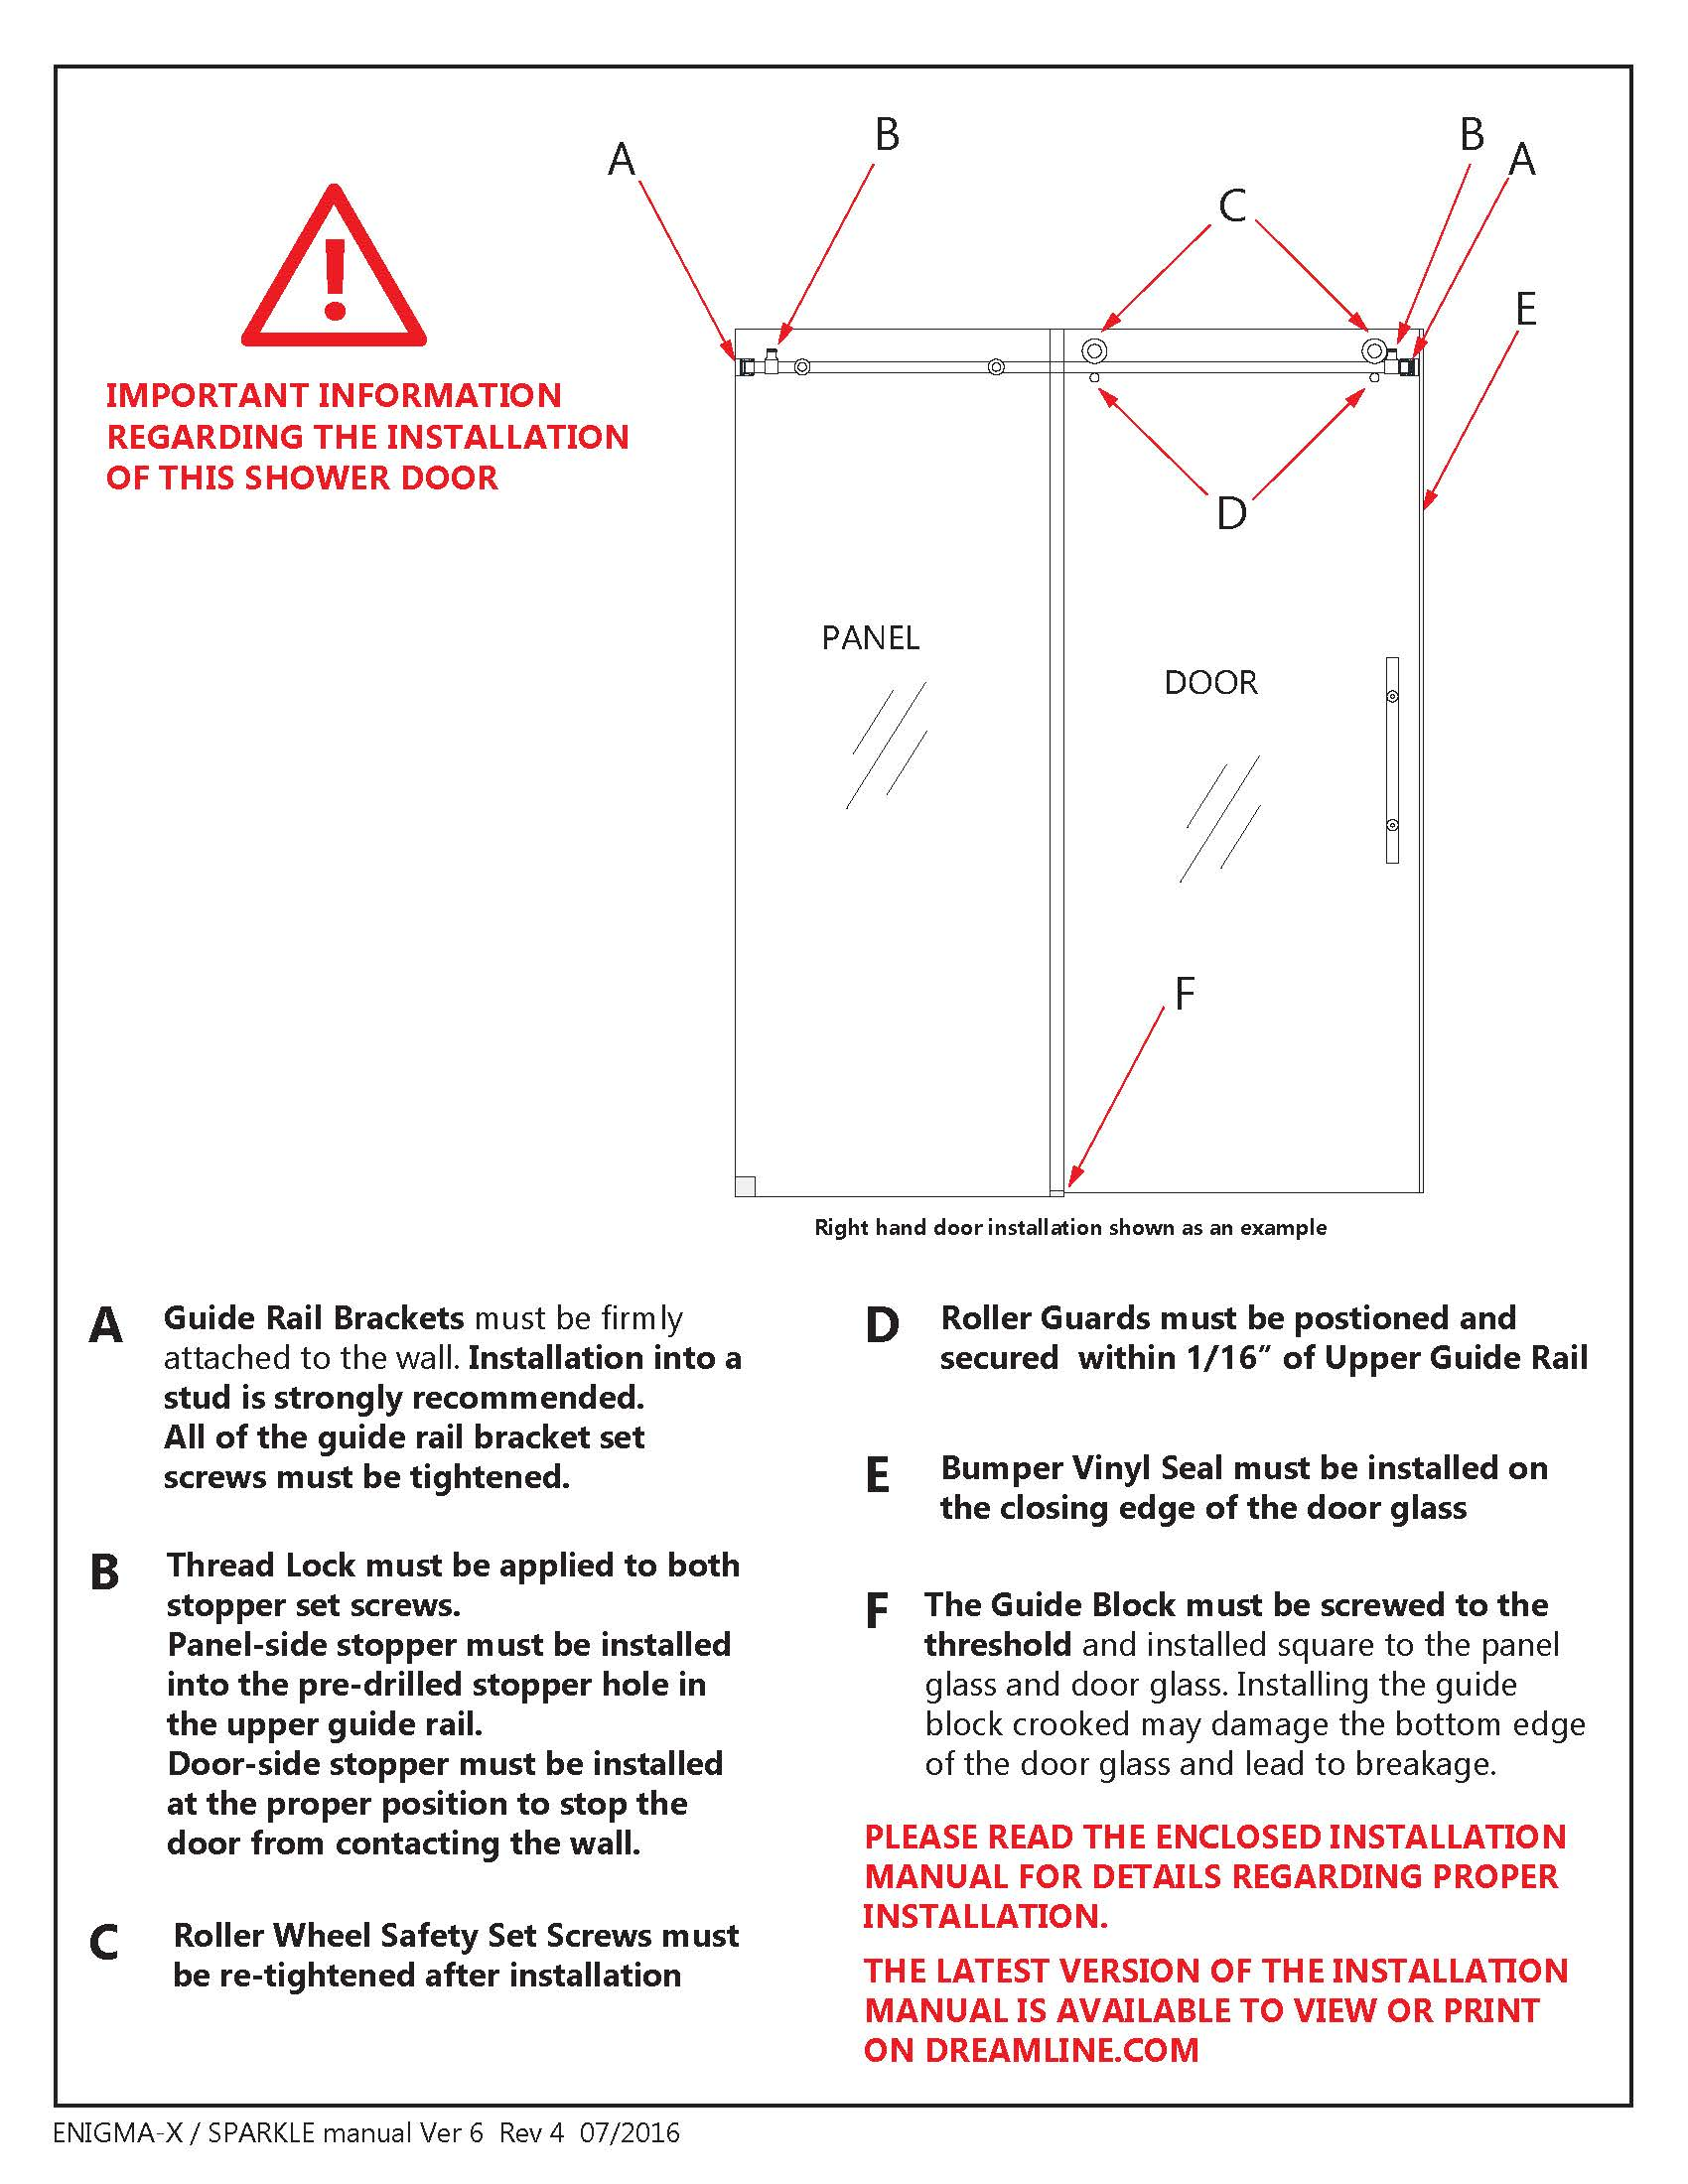 DreamLine Enigma X Glass Shower Door - Install manual Section A- F